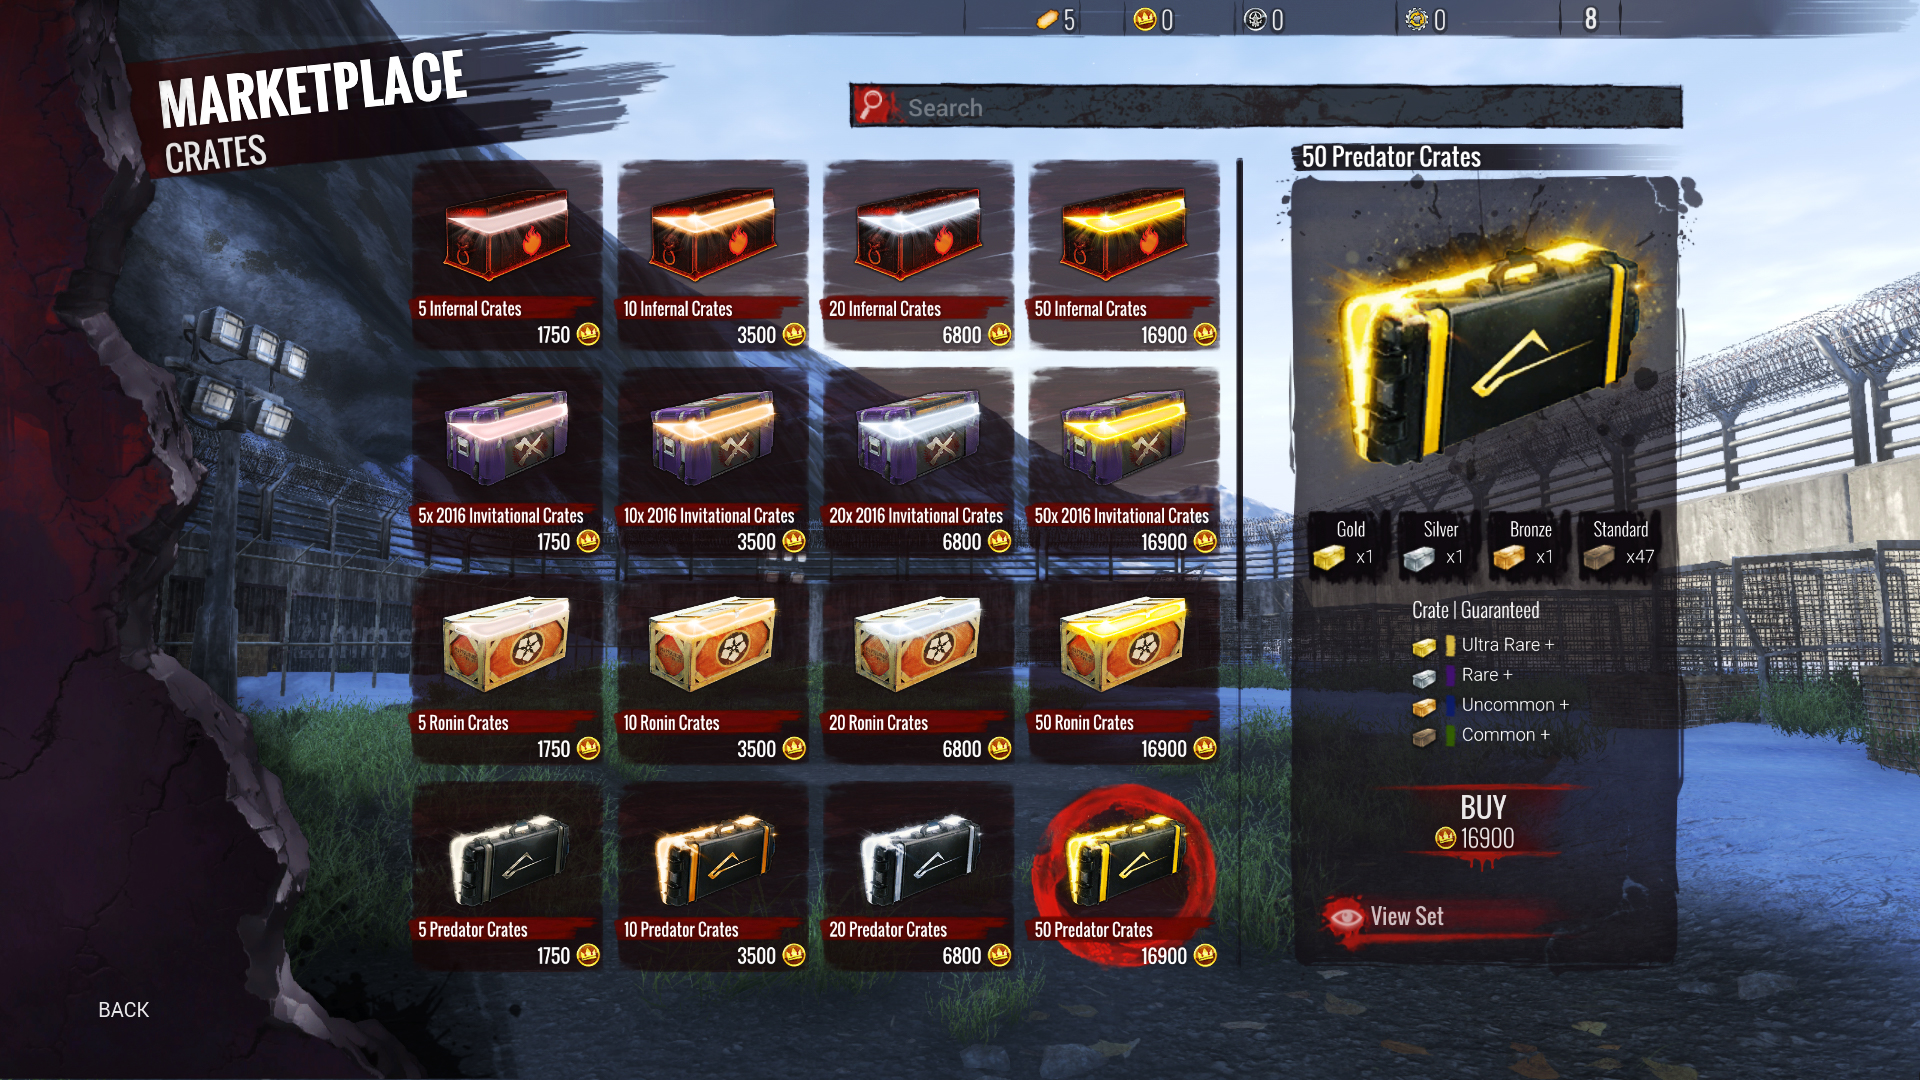 201?v=1.0 crates 101 unlock your style king of the kill massively,Invitational H1z1 Crate